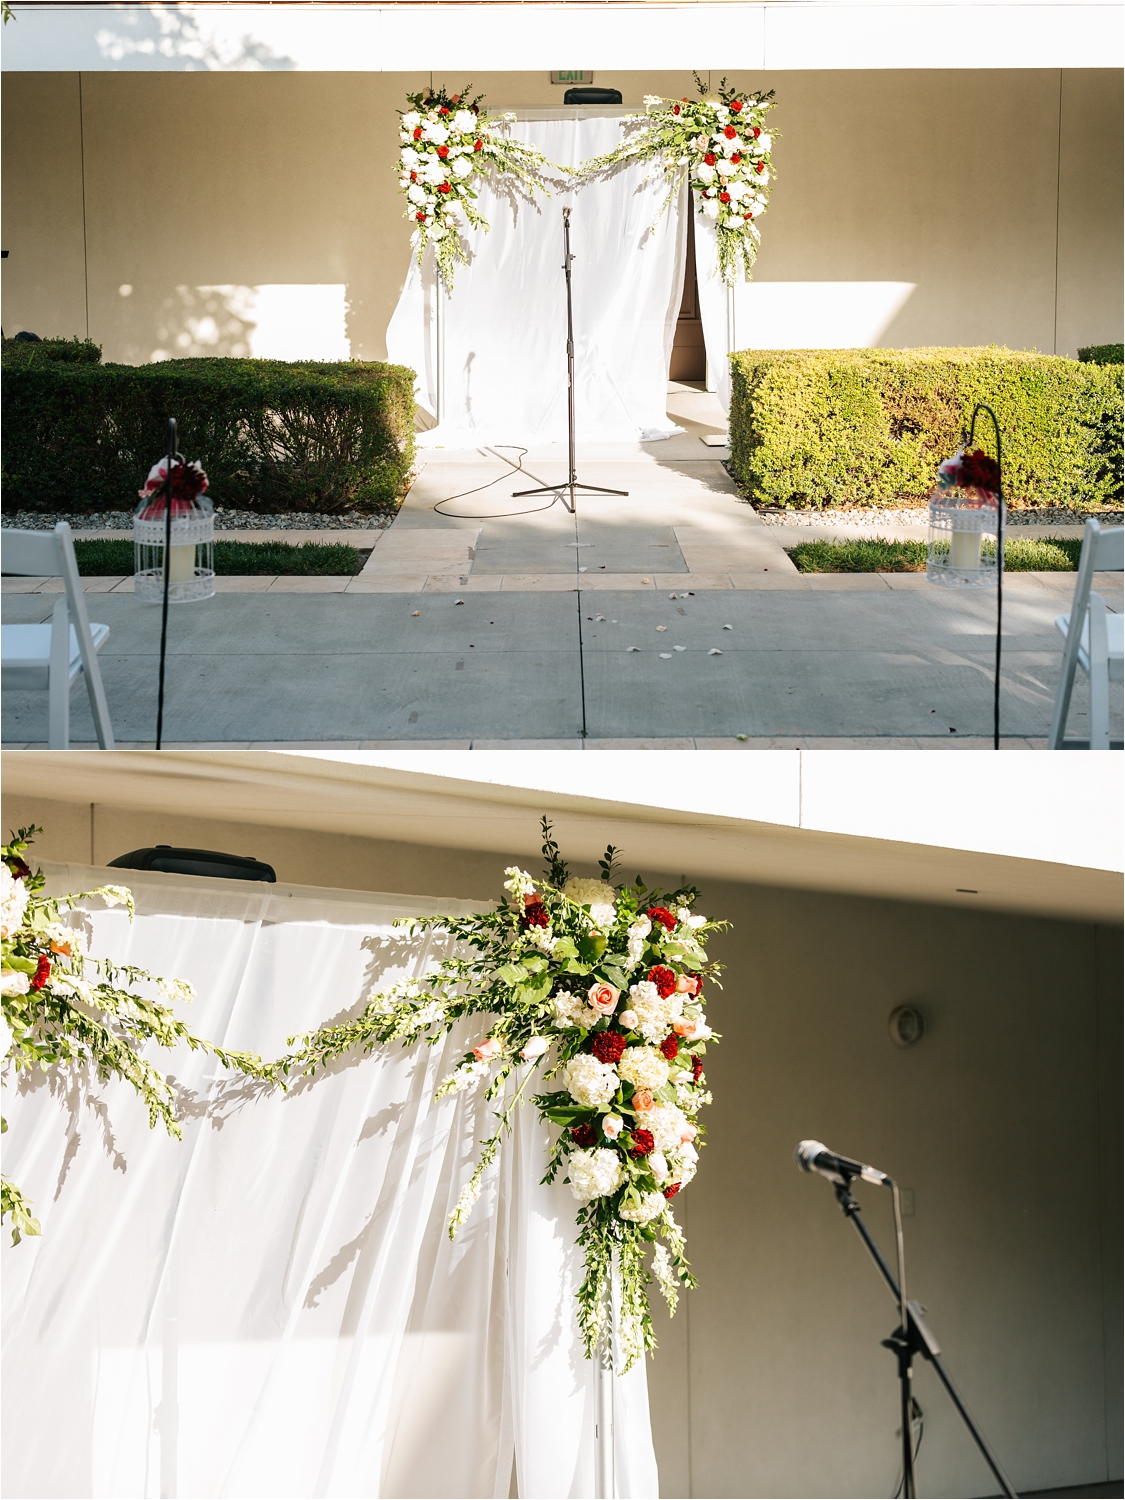 Chaffey College Wedding in Chino, CA - https://brittneyhannonphotography.com